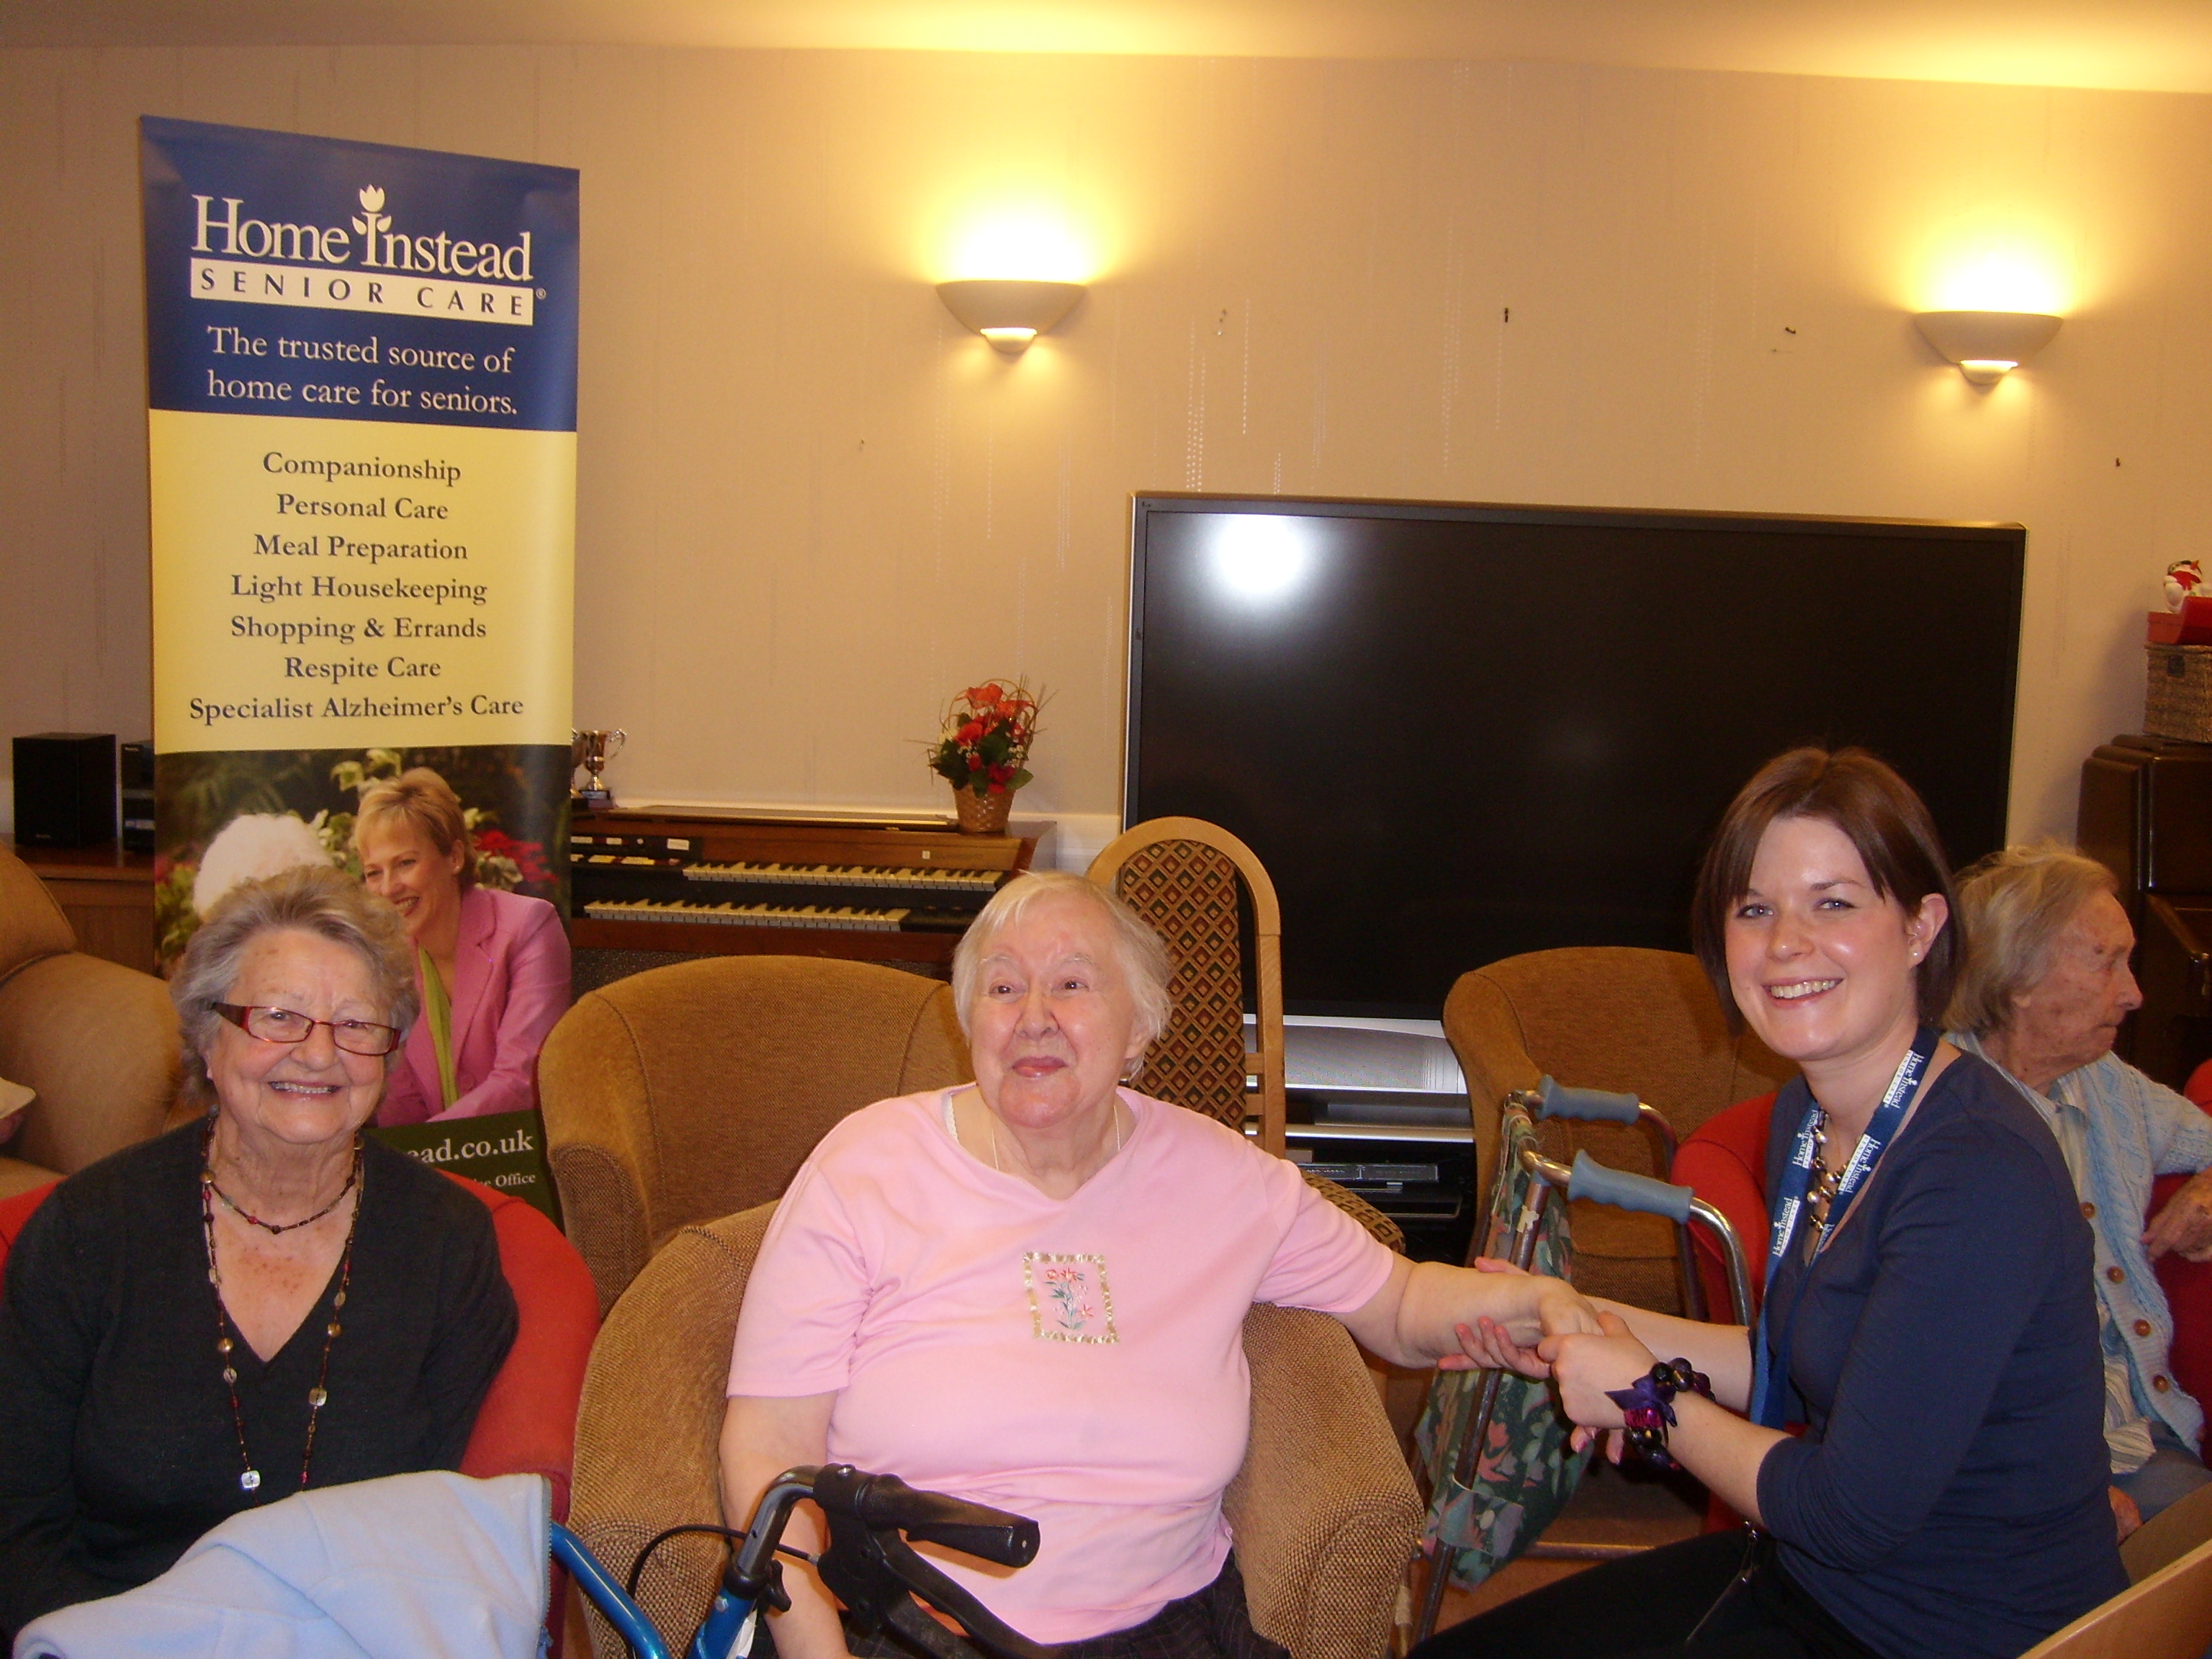 Sunnyfield Lodge residents receiving hand massages on the pamper day organized by Home Instead Senior Care Harrogate, Ripon and Thirsk